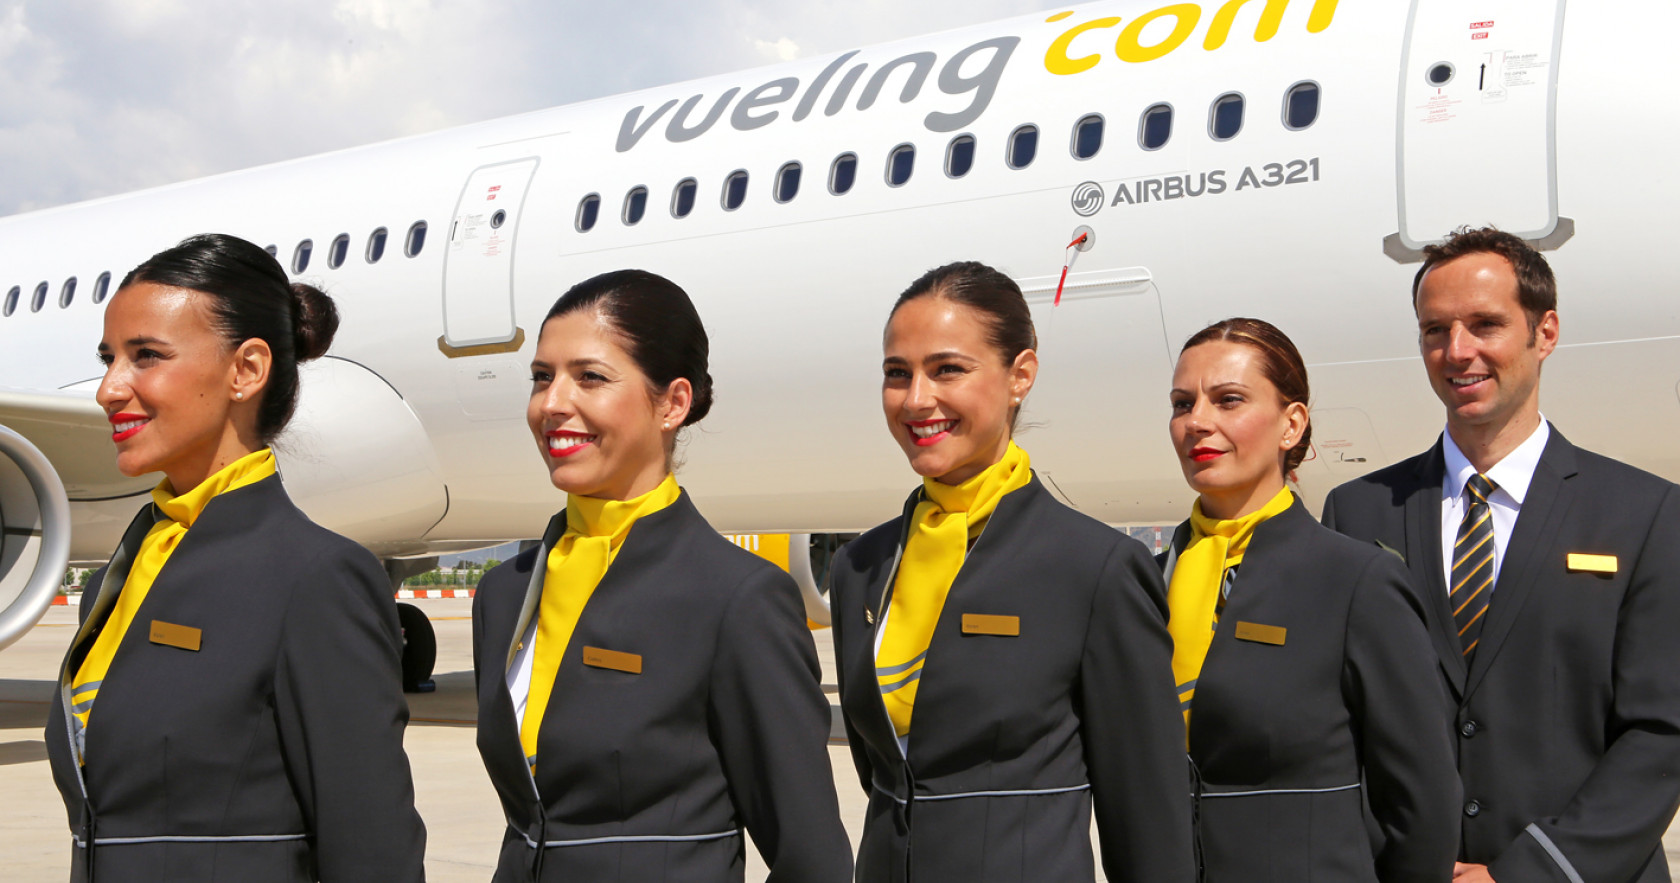 Vueling Airlines partners with the 2018 Eurovision Song Contest.